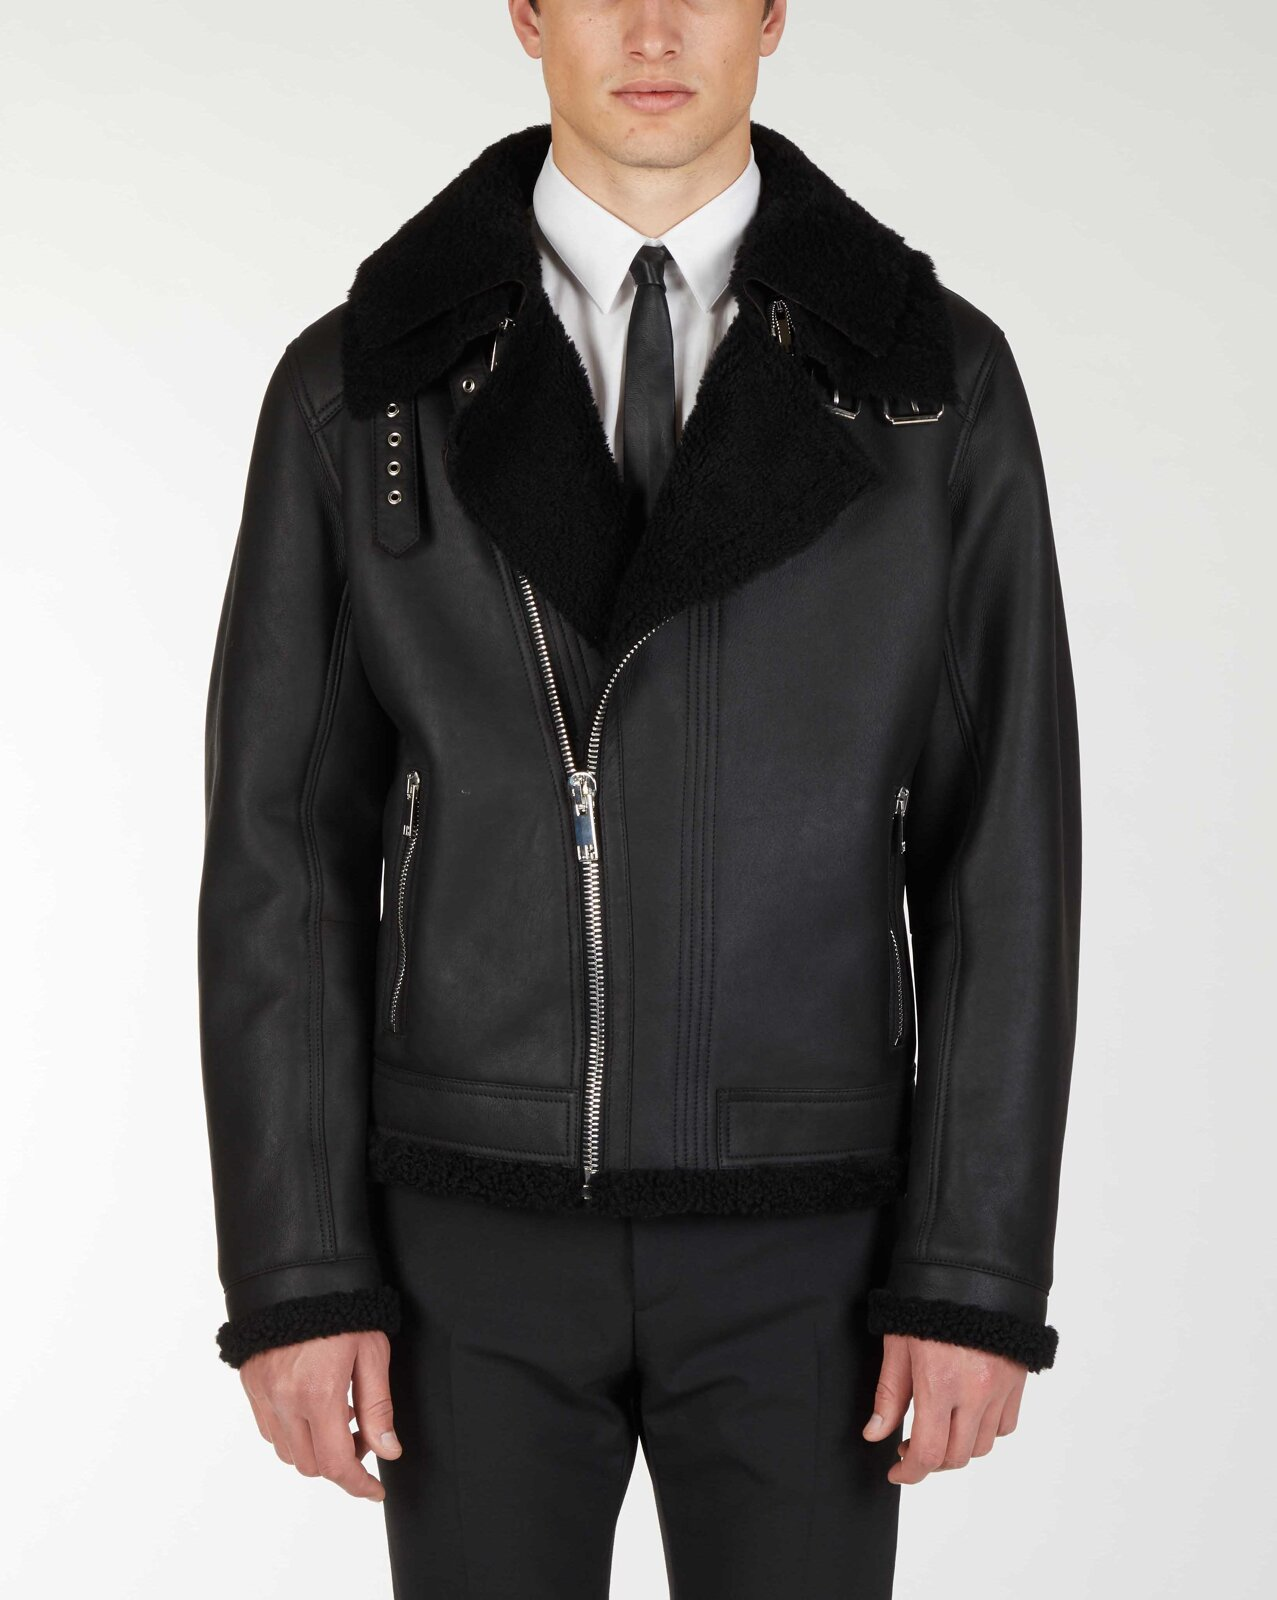 Double Collar Puffy Leather Jacket - Les Hommes